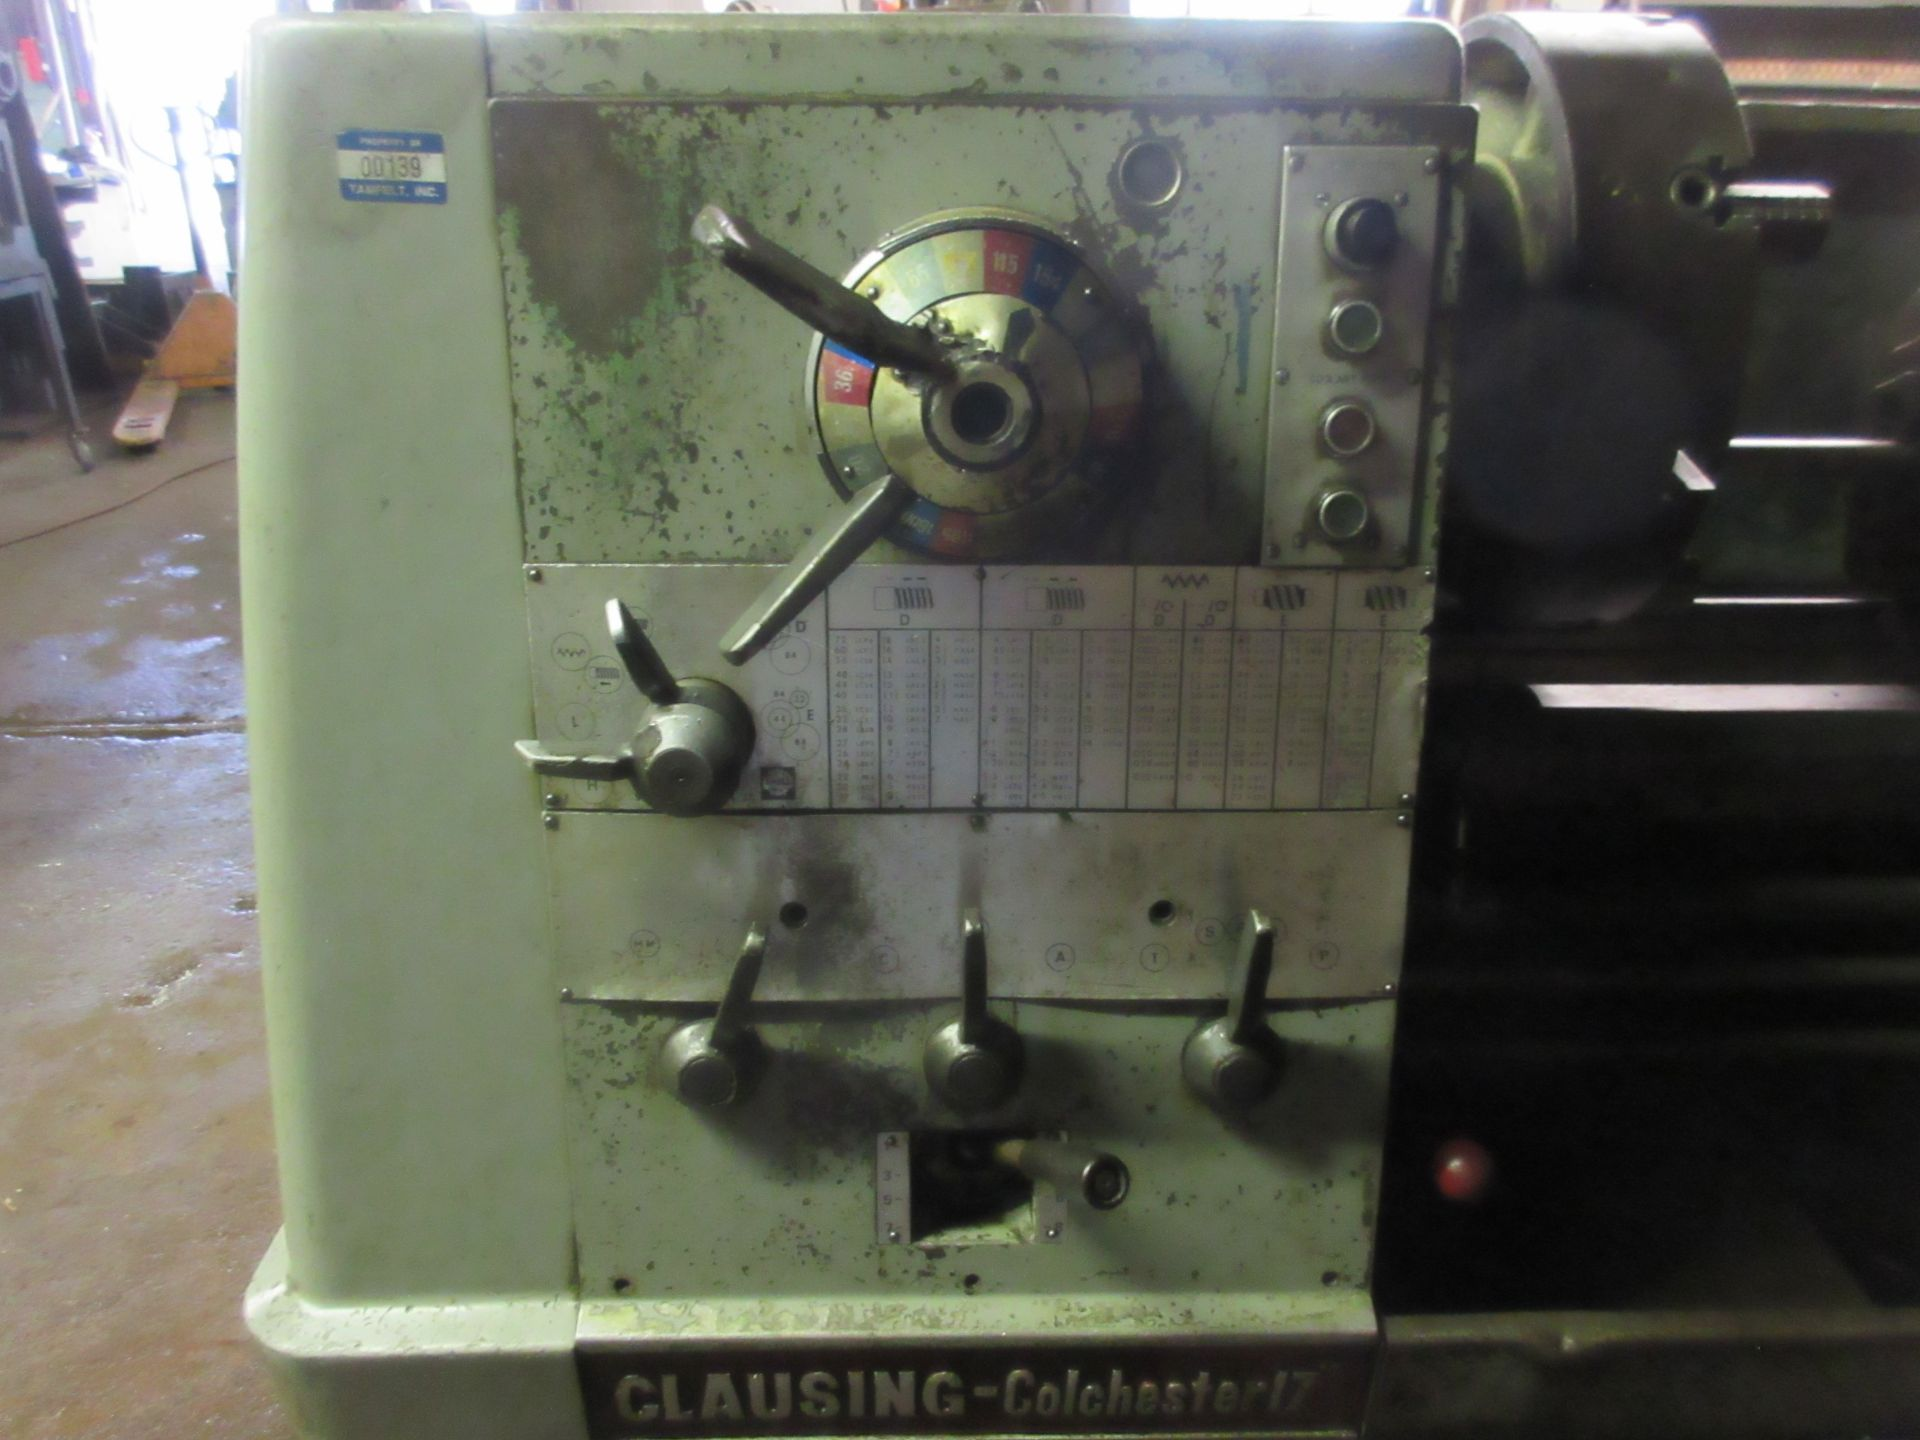 """Clausing Colchester 17"""" X 84"""" W/3"""" Spindle Hole Toolroom Lathe (1) 14"""" 3 & 16"""" 4 Jaw Chuck & 1 - Image 2 of 5"""